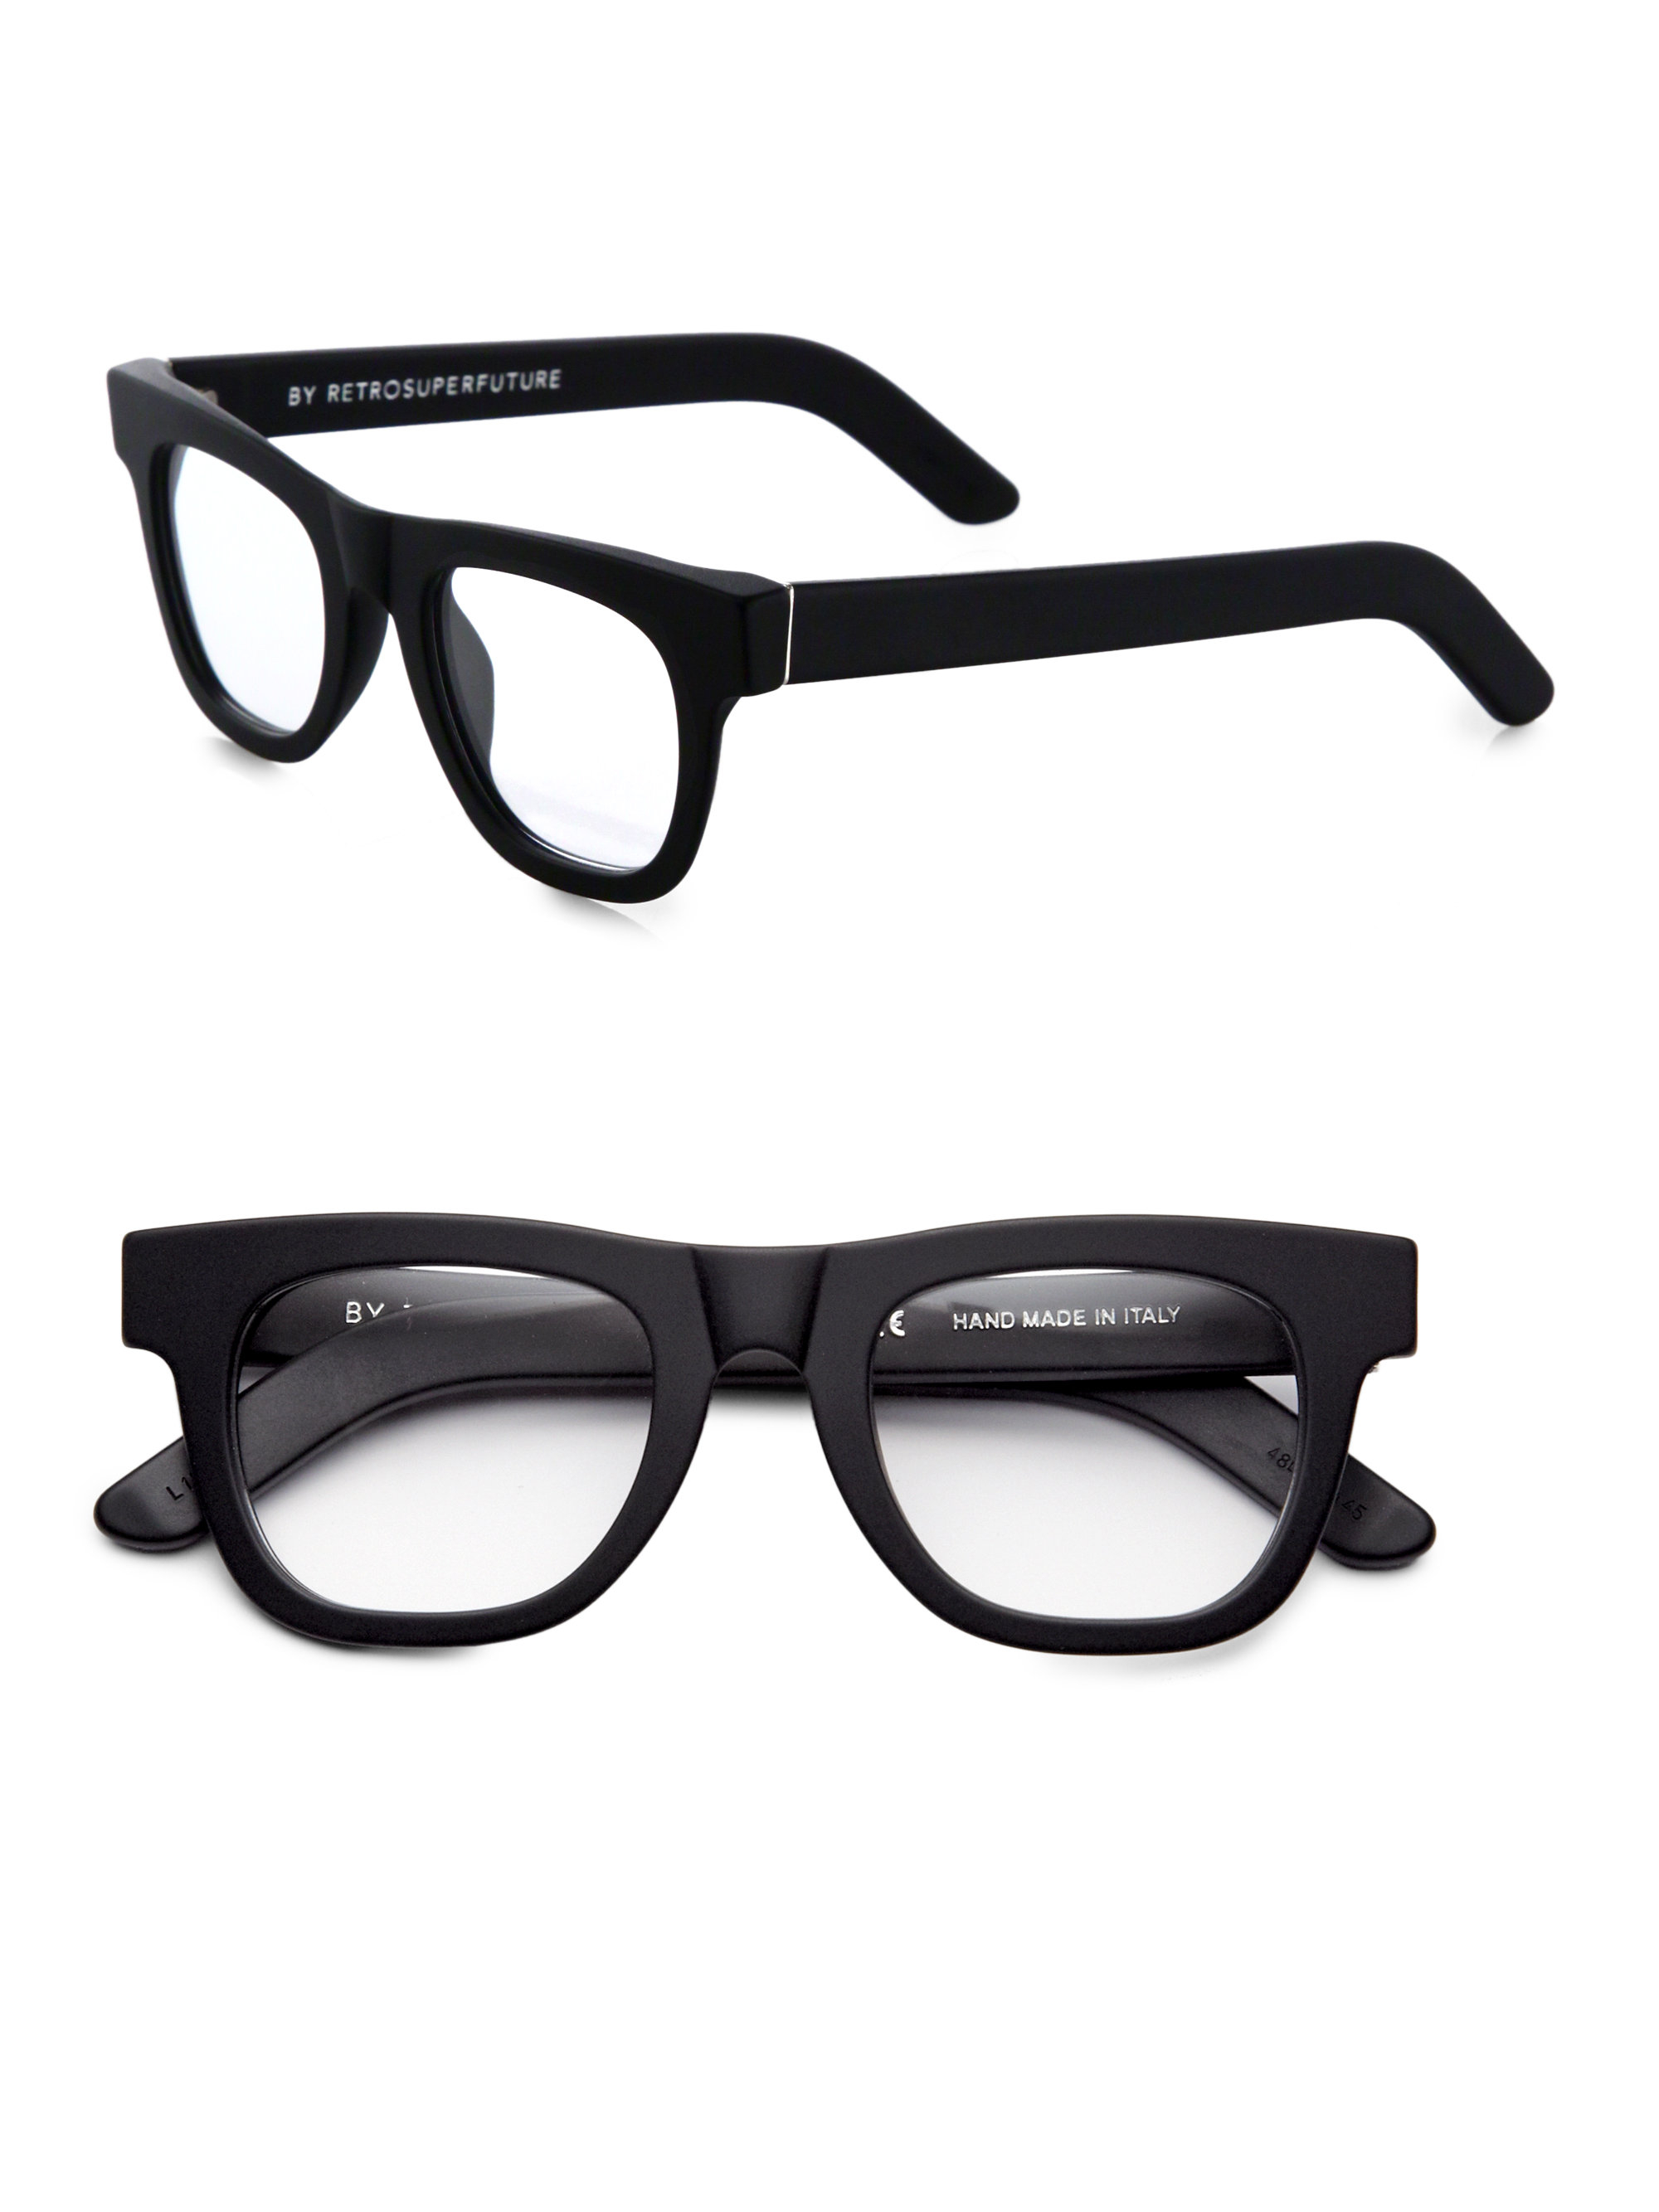 56570ded932 Lyst - Retrosuperfuture Matte Optical Ciccio Eyeglasses in Black for Men